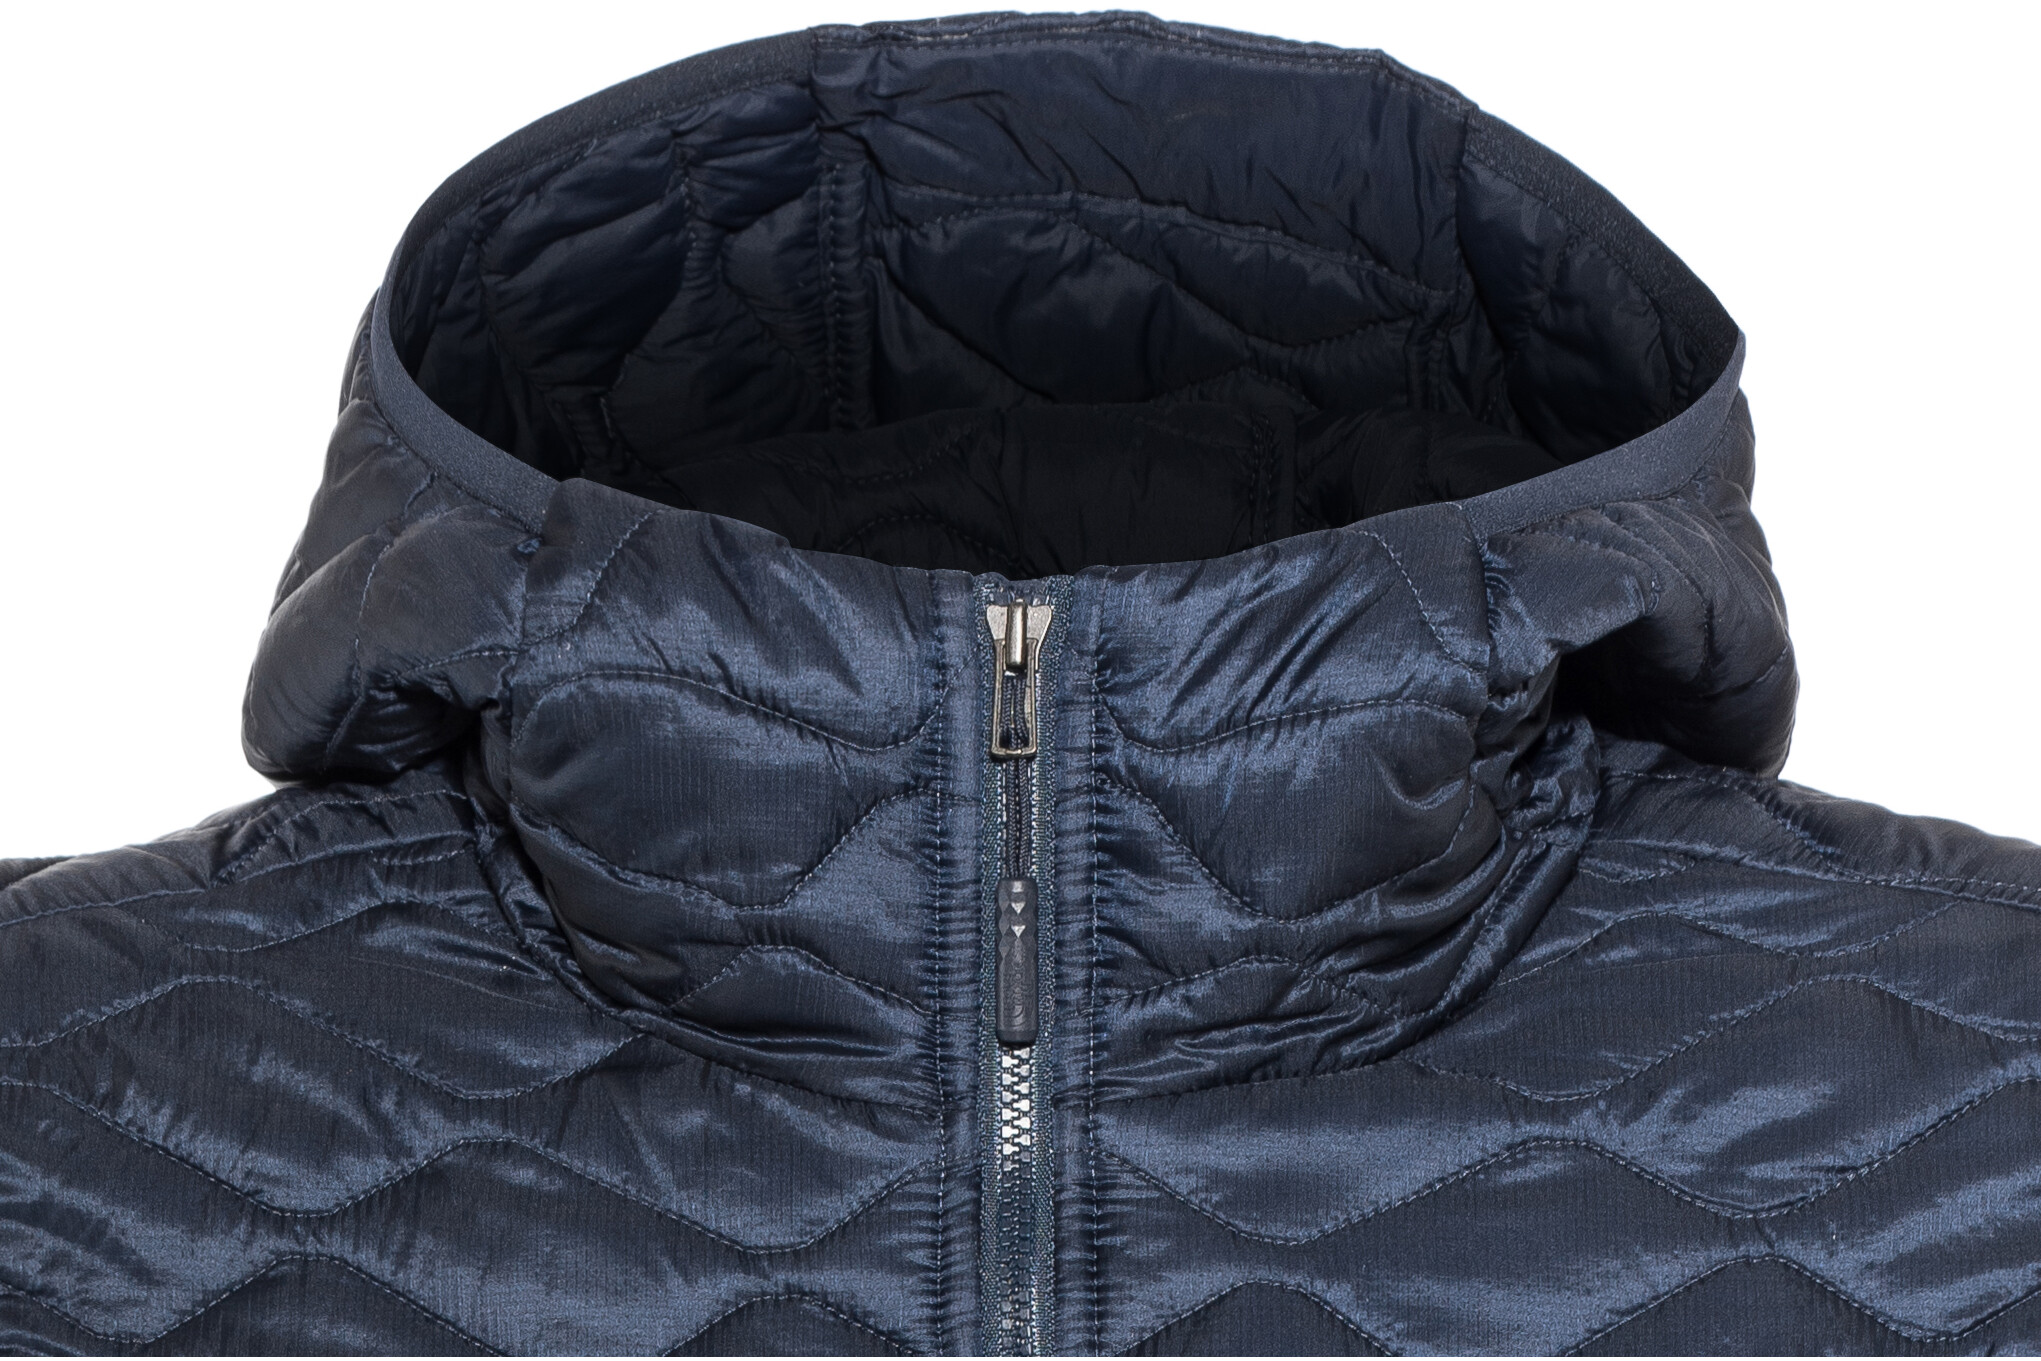 8a48a37ed27f The North Face Thermoball Pro Chaqueta con capucha Mujer, urban navy